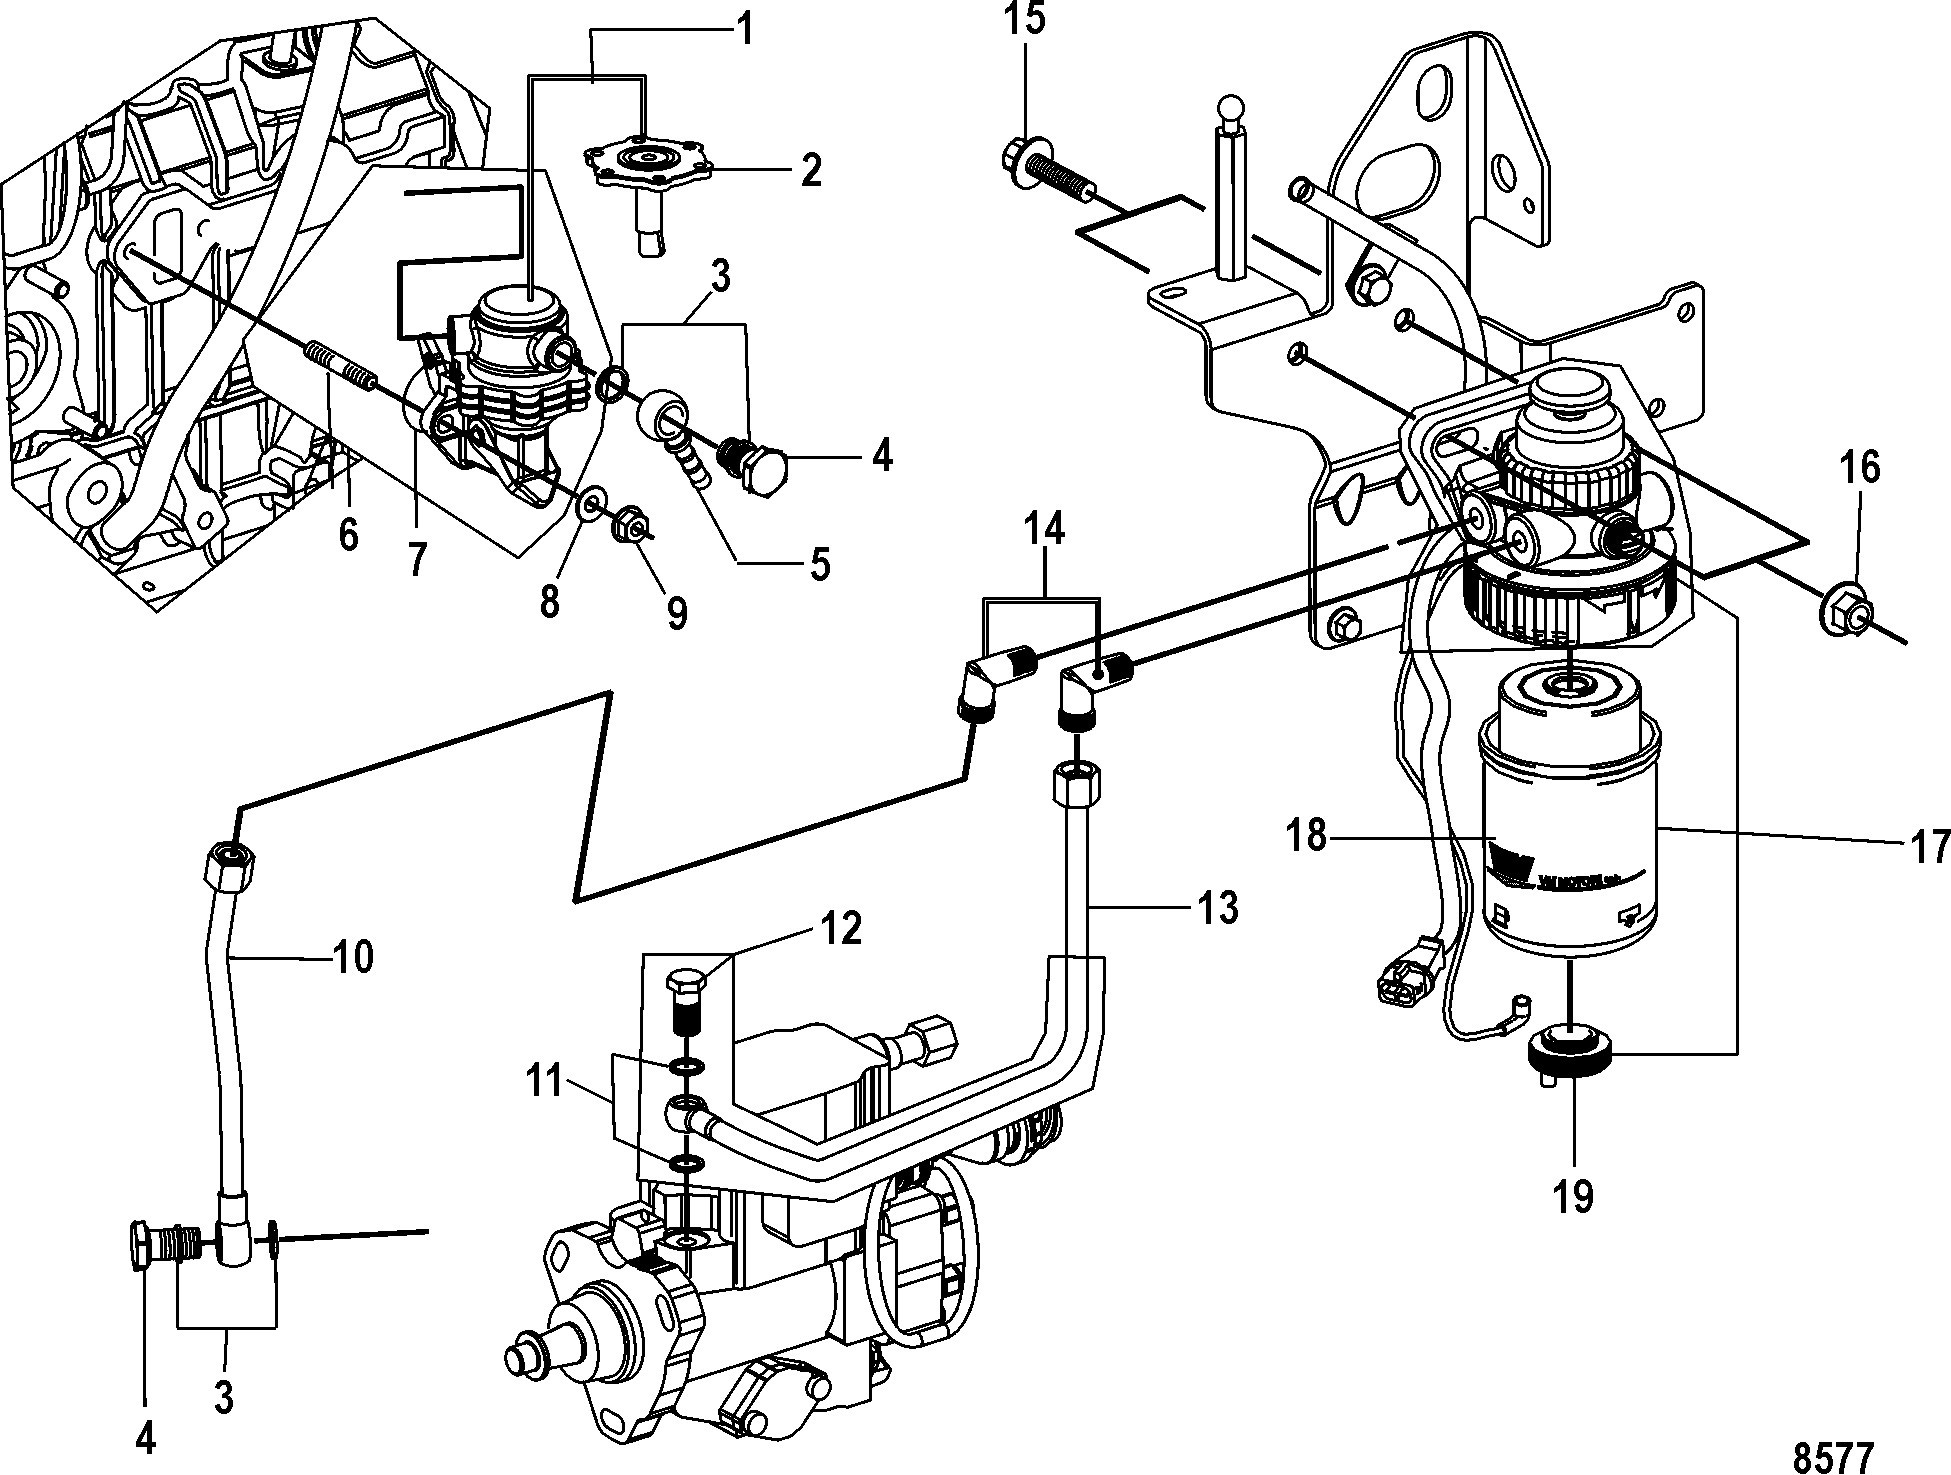 Mercruiser Thunderbolt Iv Ignition Wiring Diagram